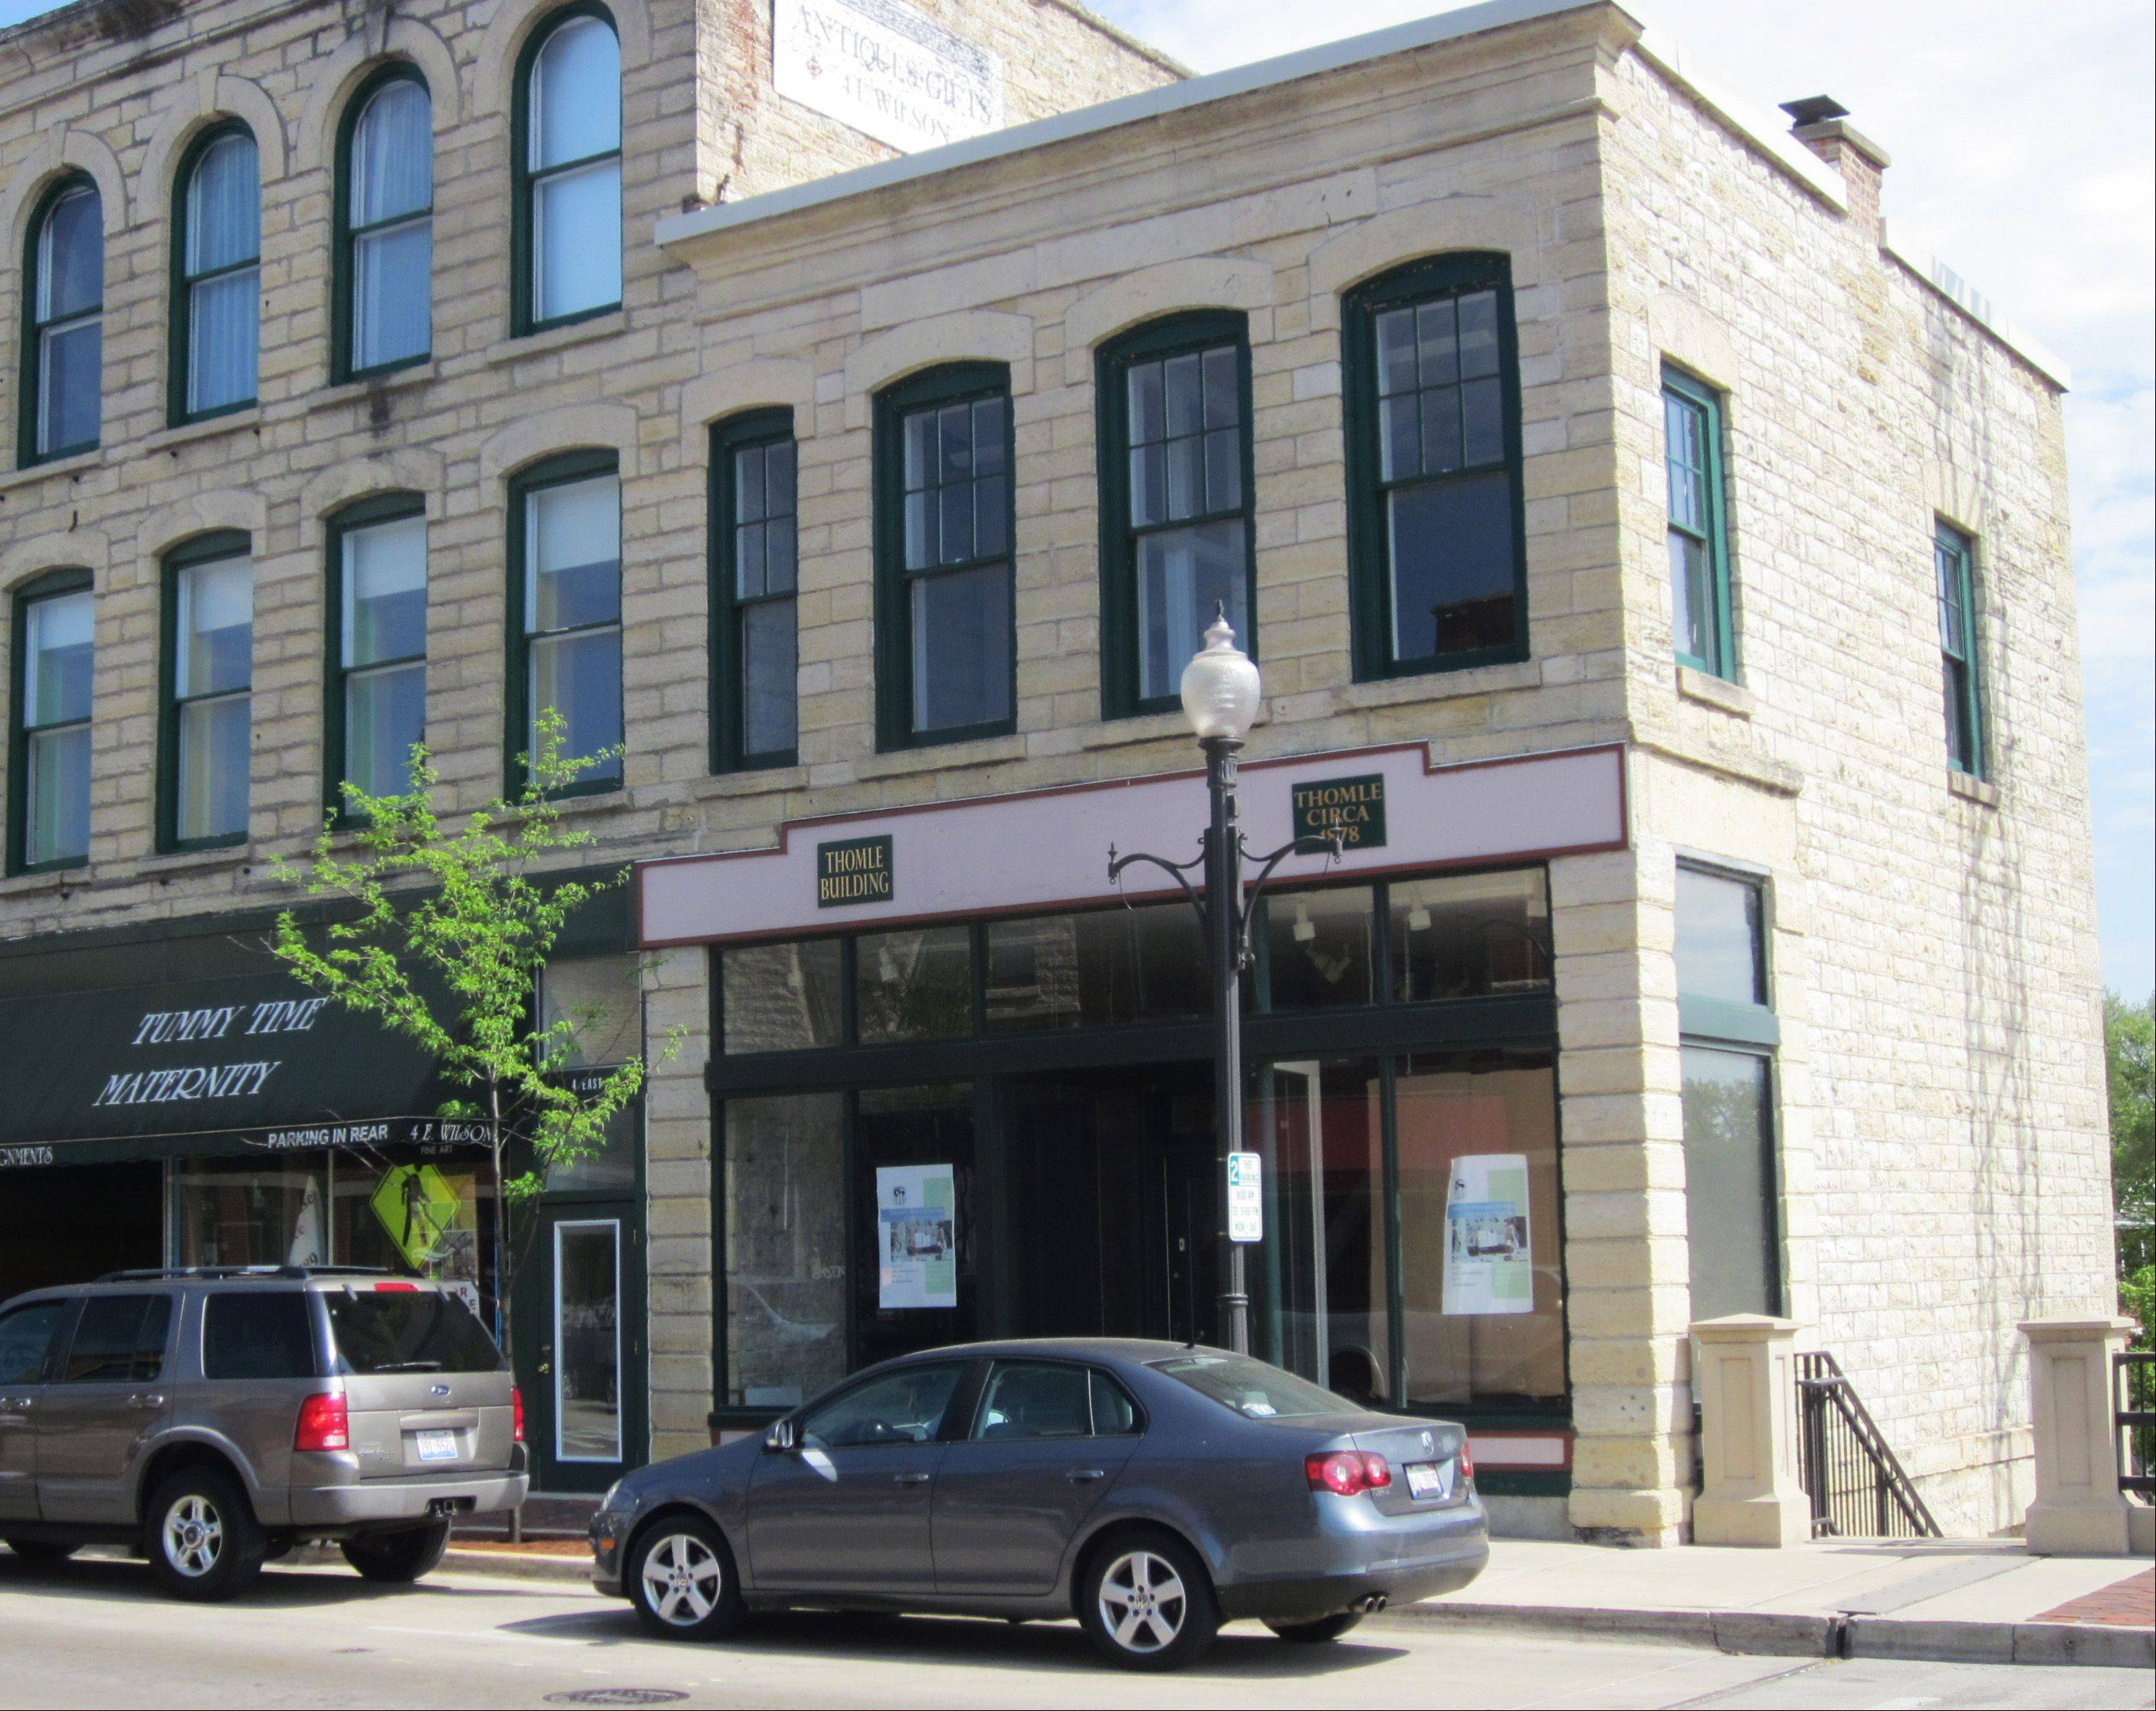 A martini bar and combining with the building next door to create shops and apartments are two proposals for the 135-year-old, city-owned Thomle Building at 2 E. Wilson Street in downtown Batavia.